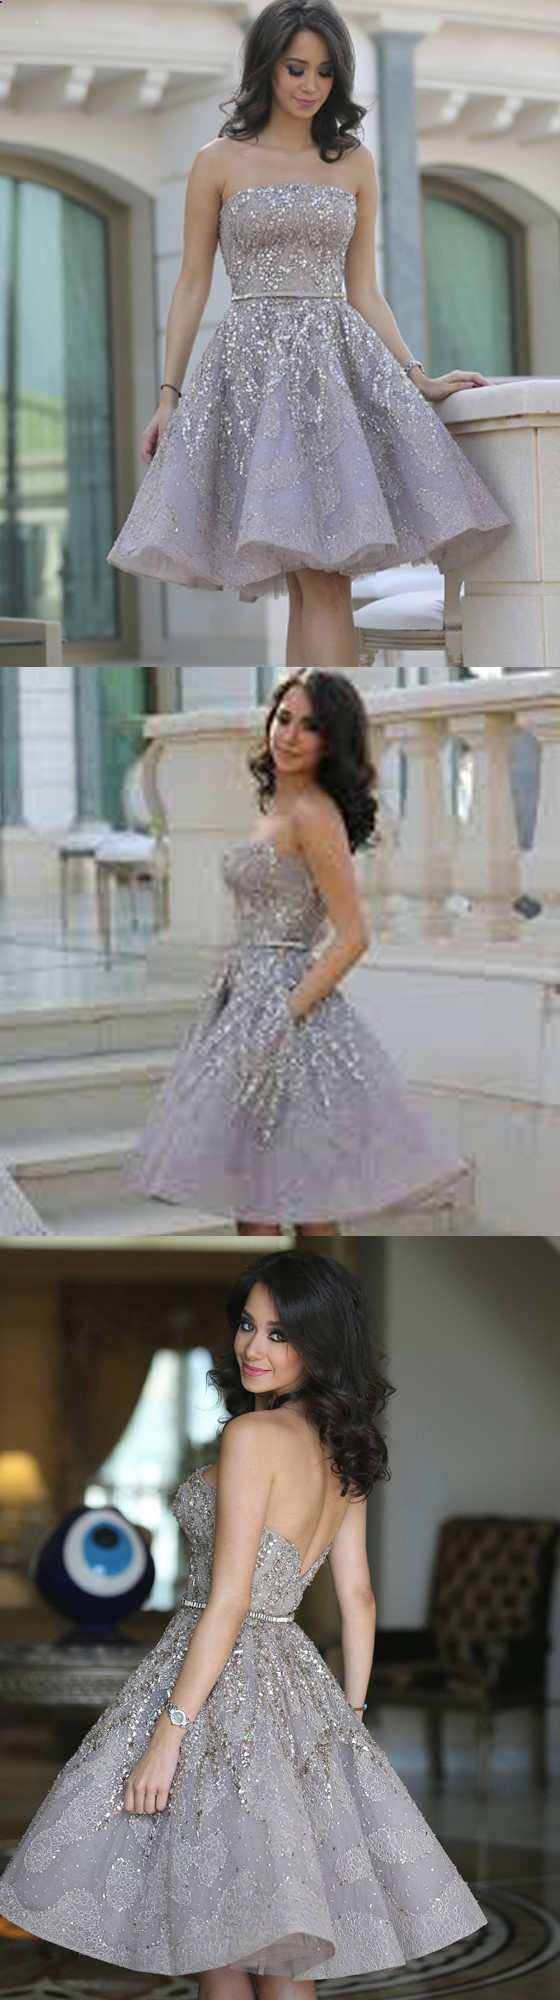 Sparkly short homecoming dress pretty homecoming dress occasion